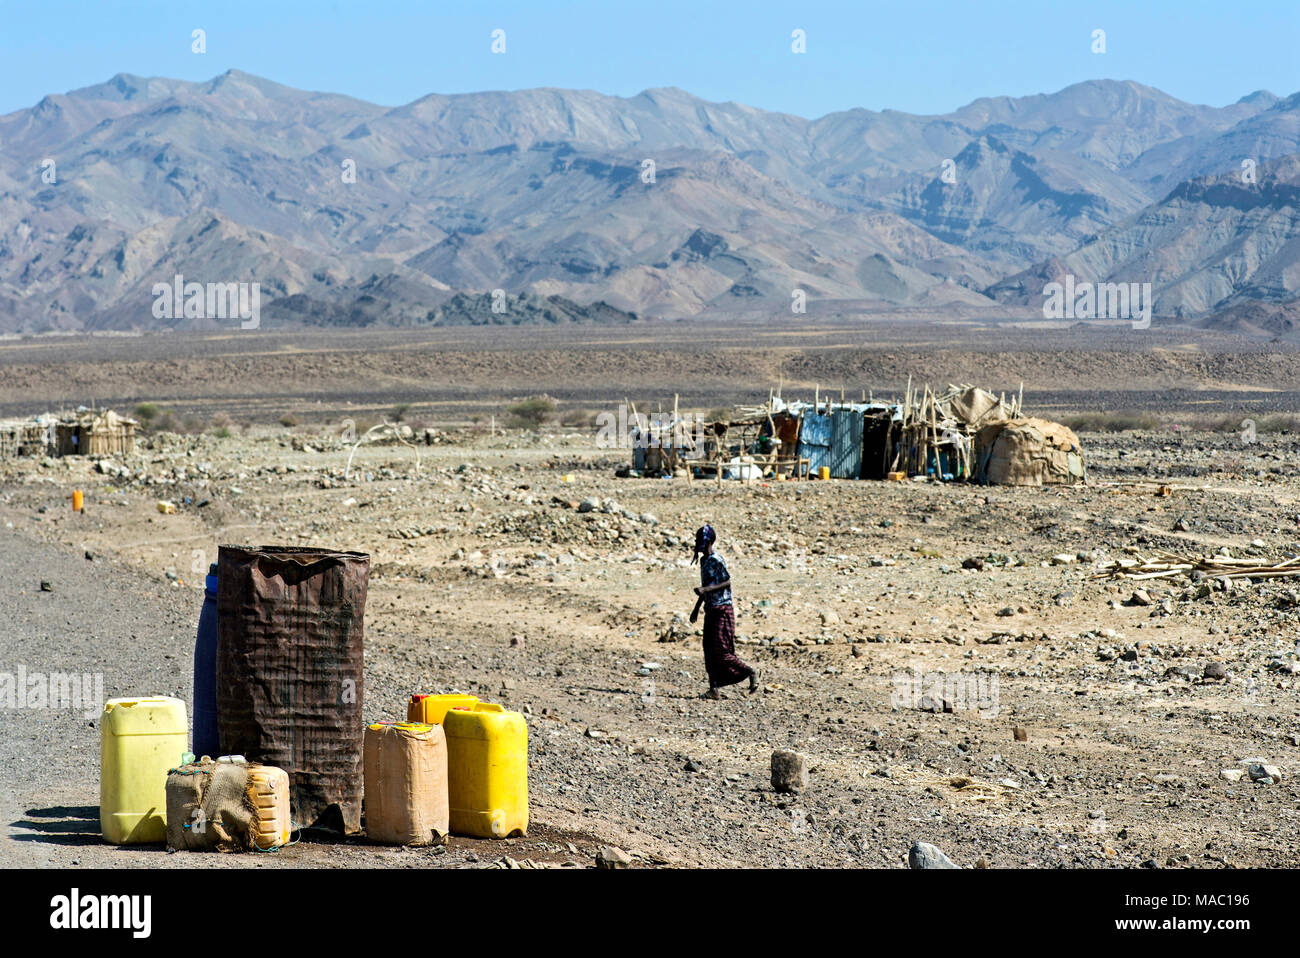 Potable water for sale in plastic jerry cans at the road side, Danakil depression, Afar Triangle, Ethiopia - Stock Image